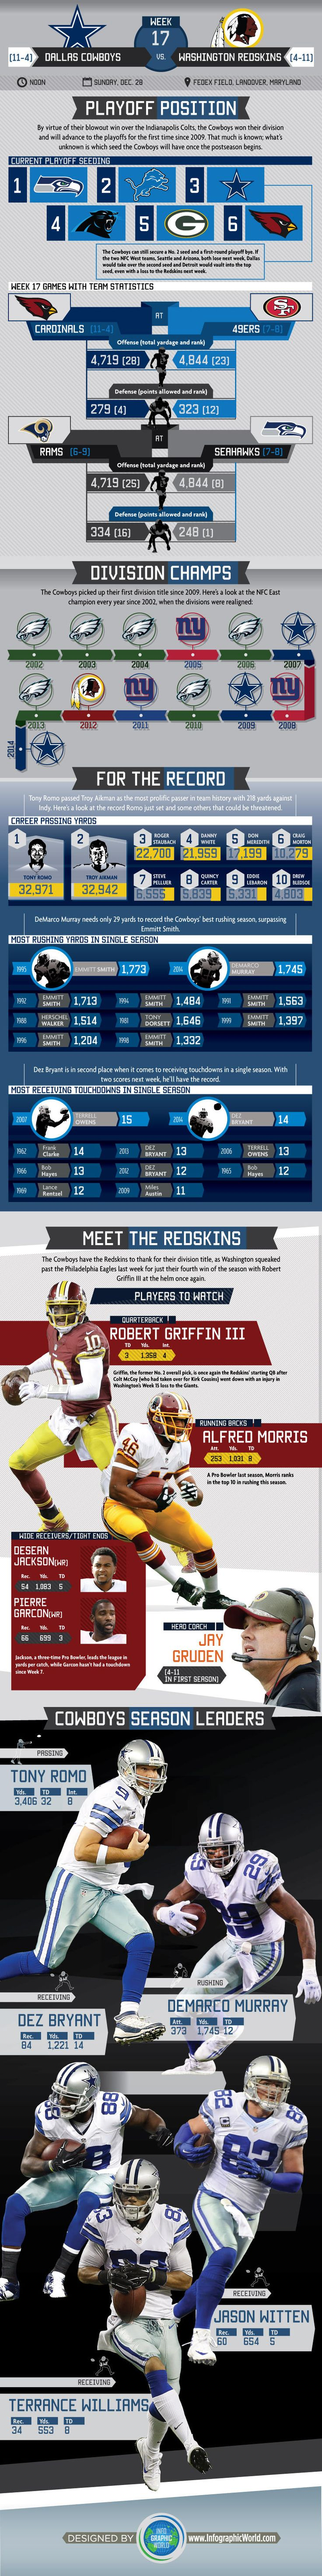 Infographic: Breaking Down Week 17 & The Cowboys' Playoff Picture | Dallas Cowboys